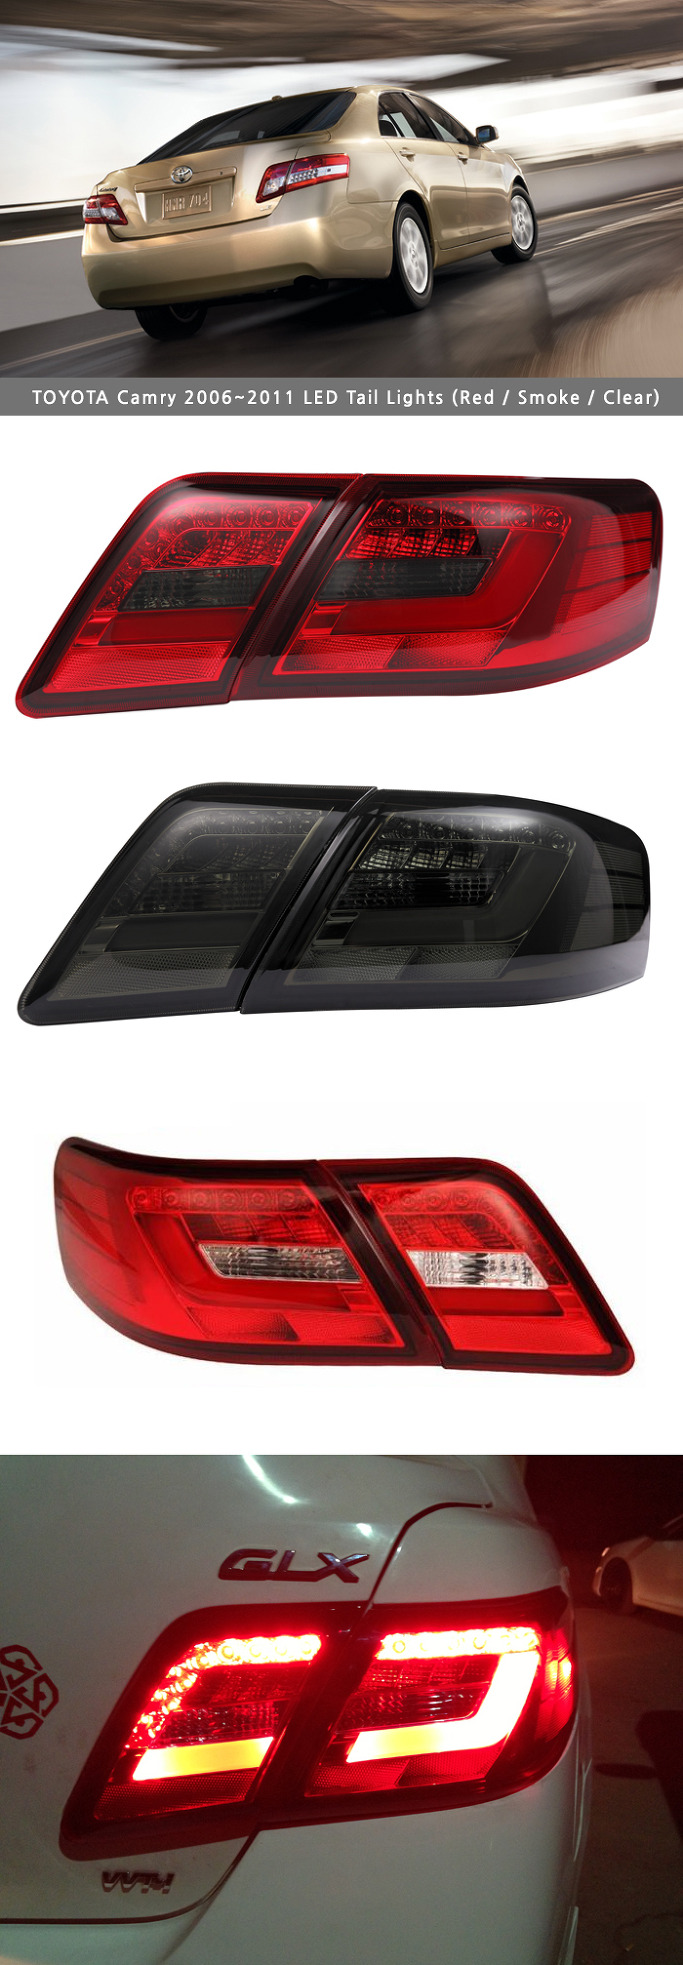 north america version led tail lights rear lamps for toyota camry 2006 2011 ebay. Black Bedroom Furniture Sets. Home Design Ideas